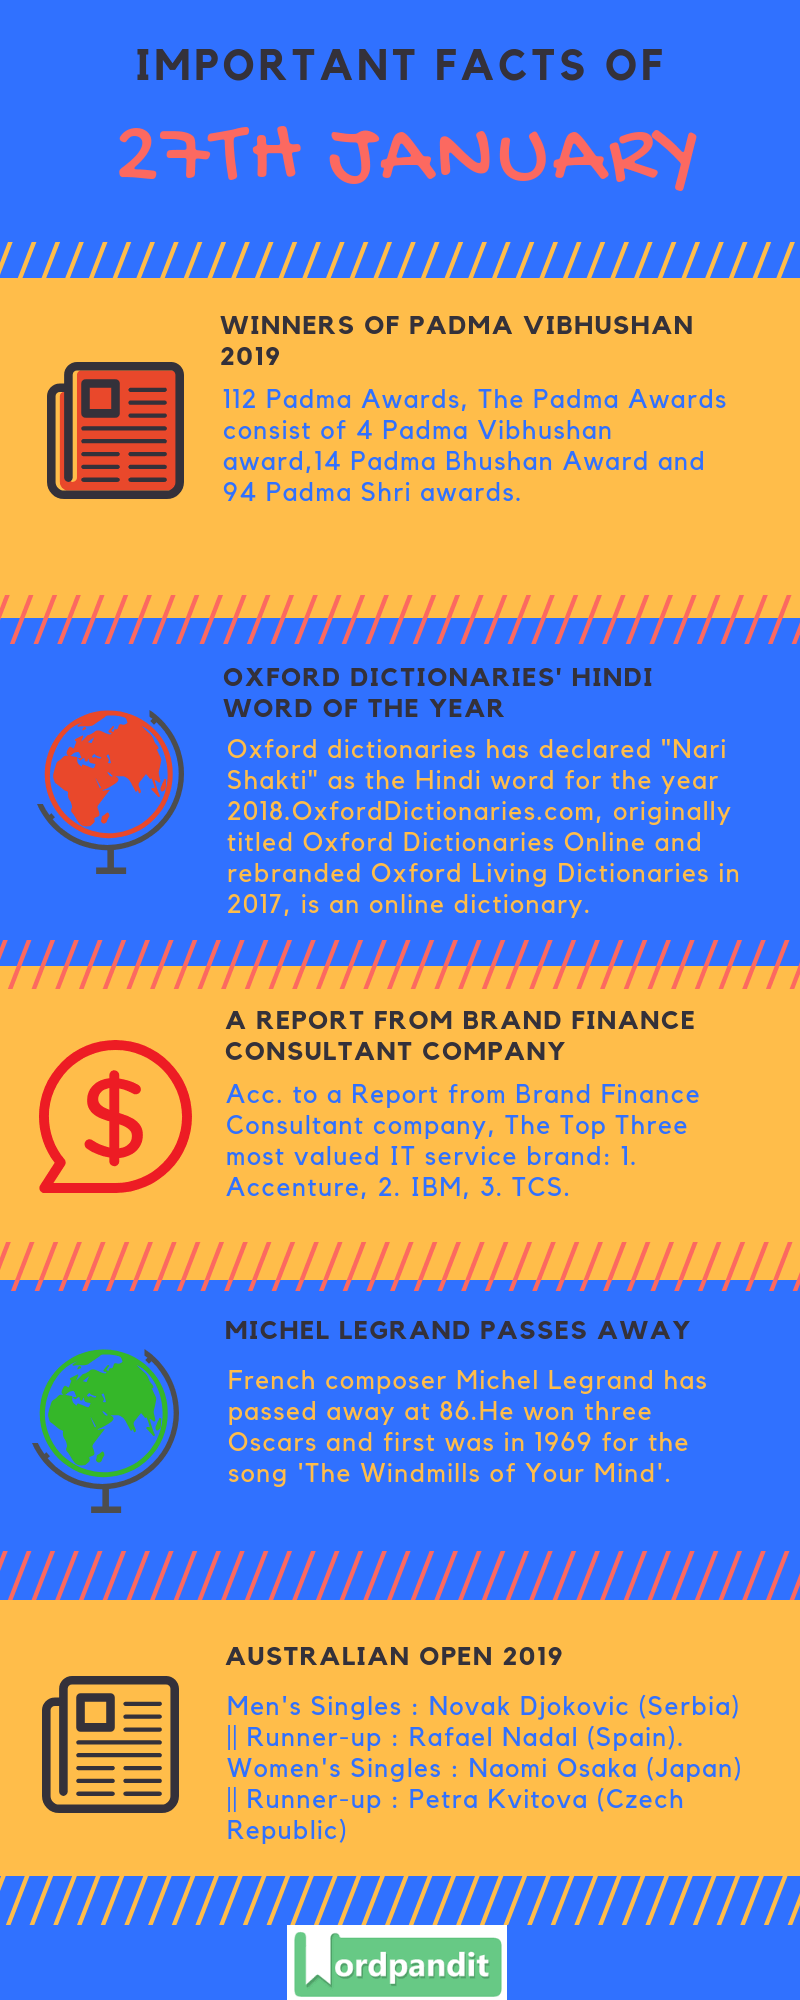 Daily Current Affairs 27 January 2019 Current Affairs Quiz 27 January 2019 Current Affairs Infographic